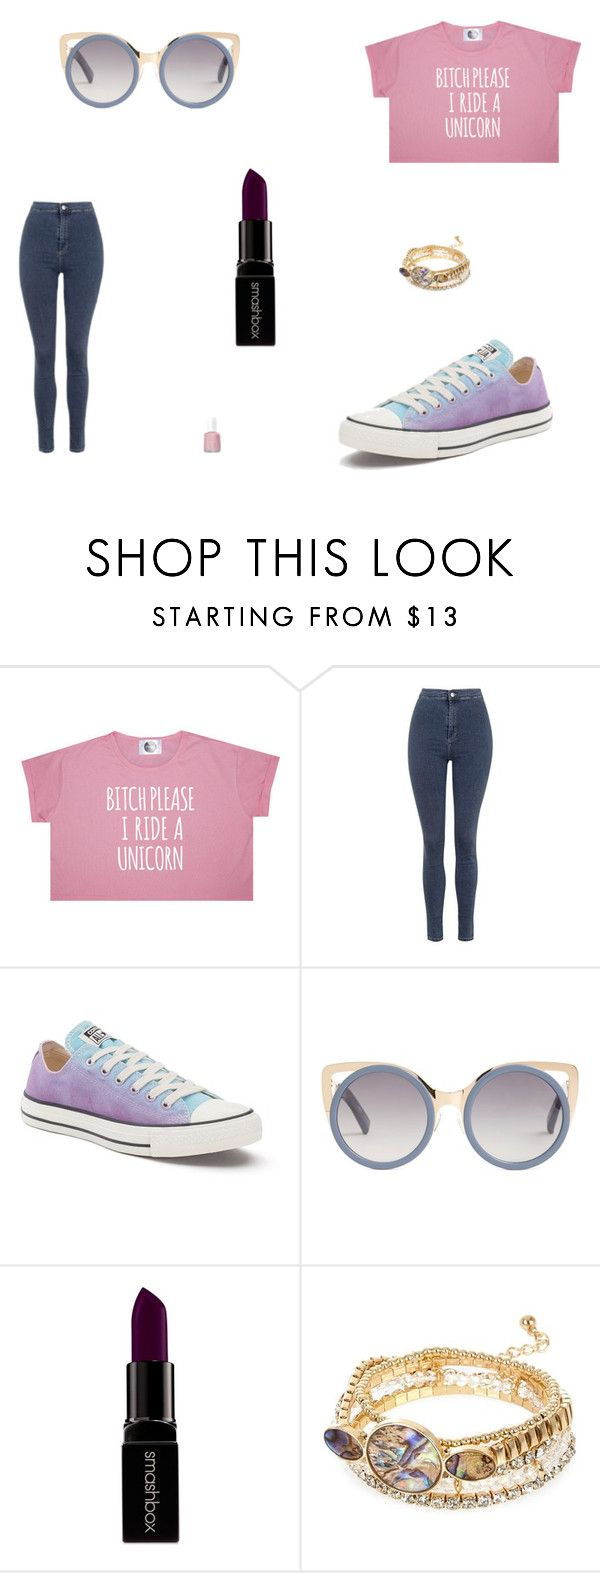 """Untitled #6636"" by mie-miemie ❤ liked on Polyvore featuring Topshop, Converse, Erdem, Smashbox, River Island and Essie"